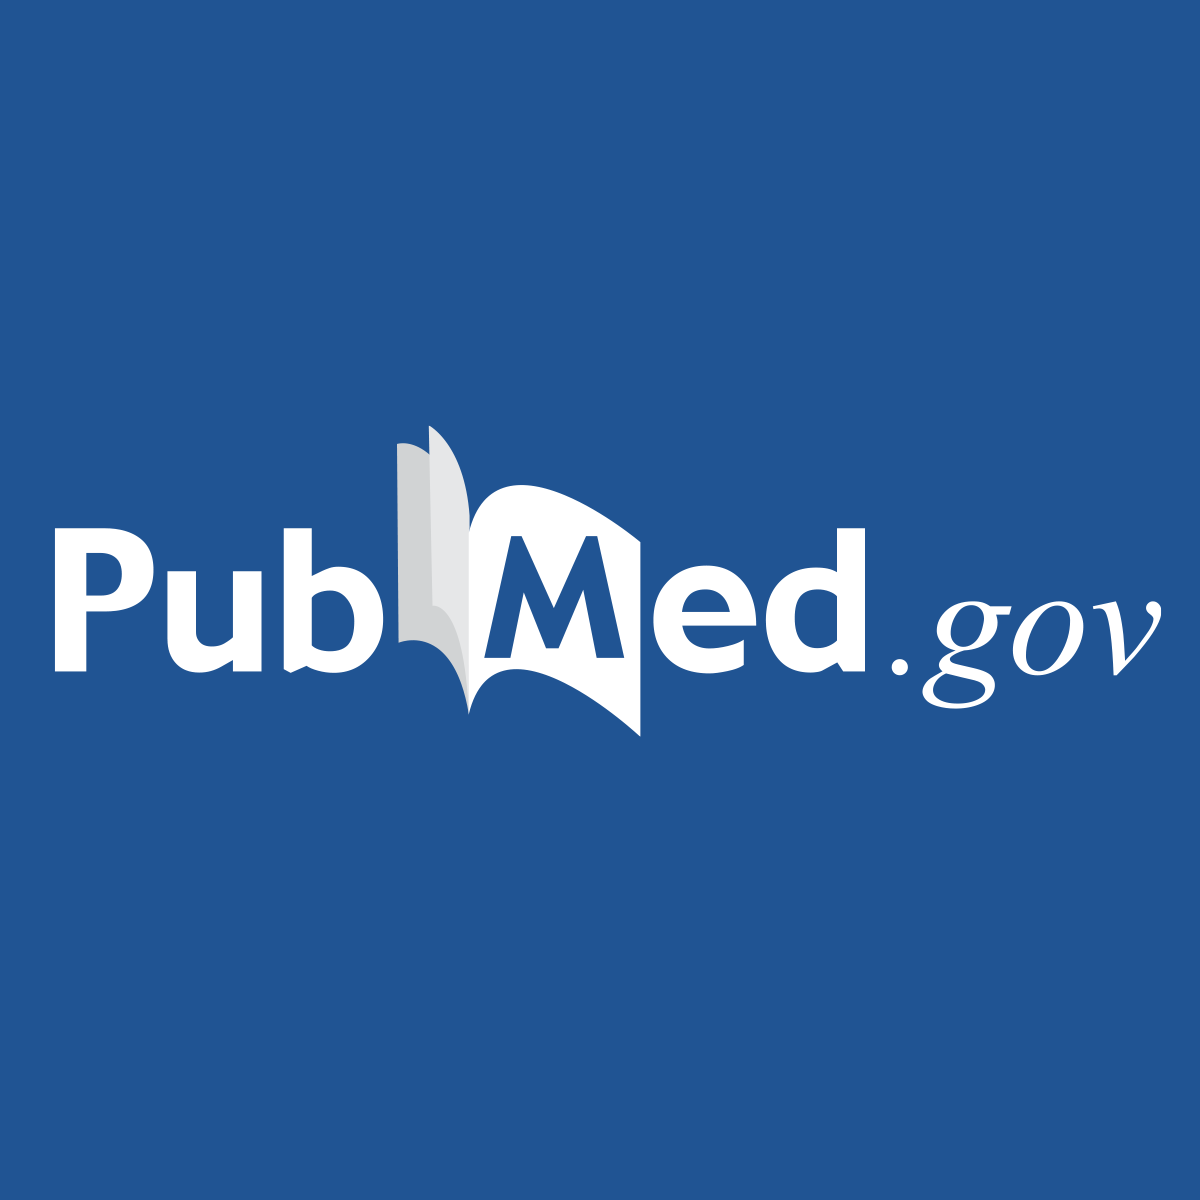 PubMed database logo